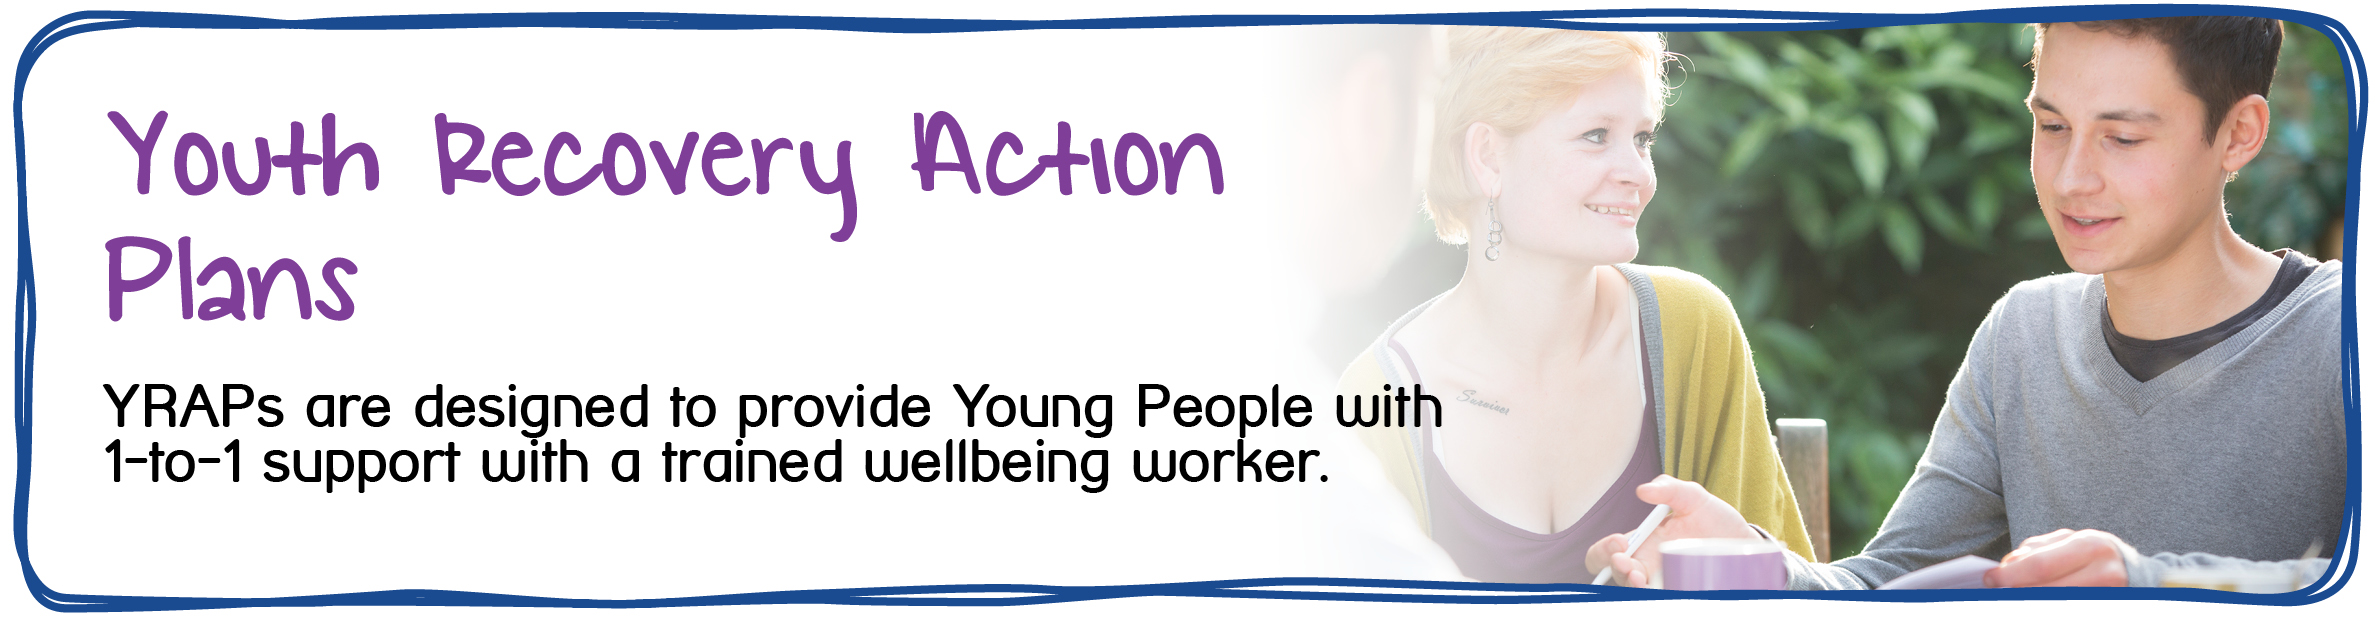 Maidstone and Mid-Kent Mind Youth Services - YRAPs - 1-to-1 support for young people with a trained wellbeing worker.